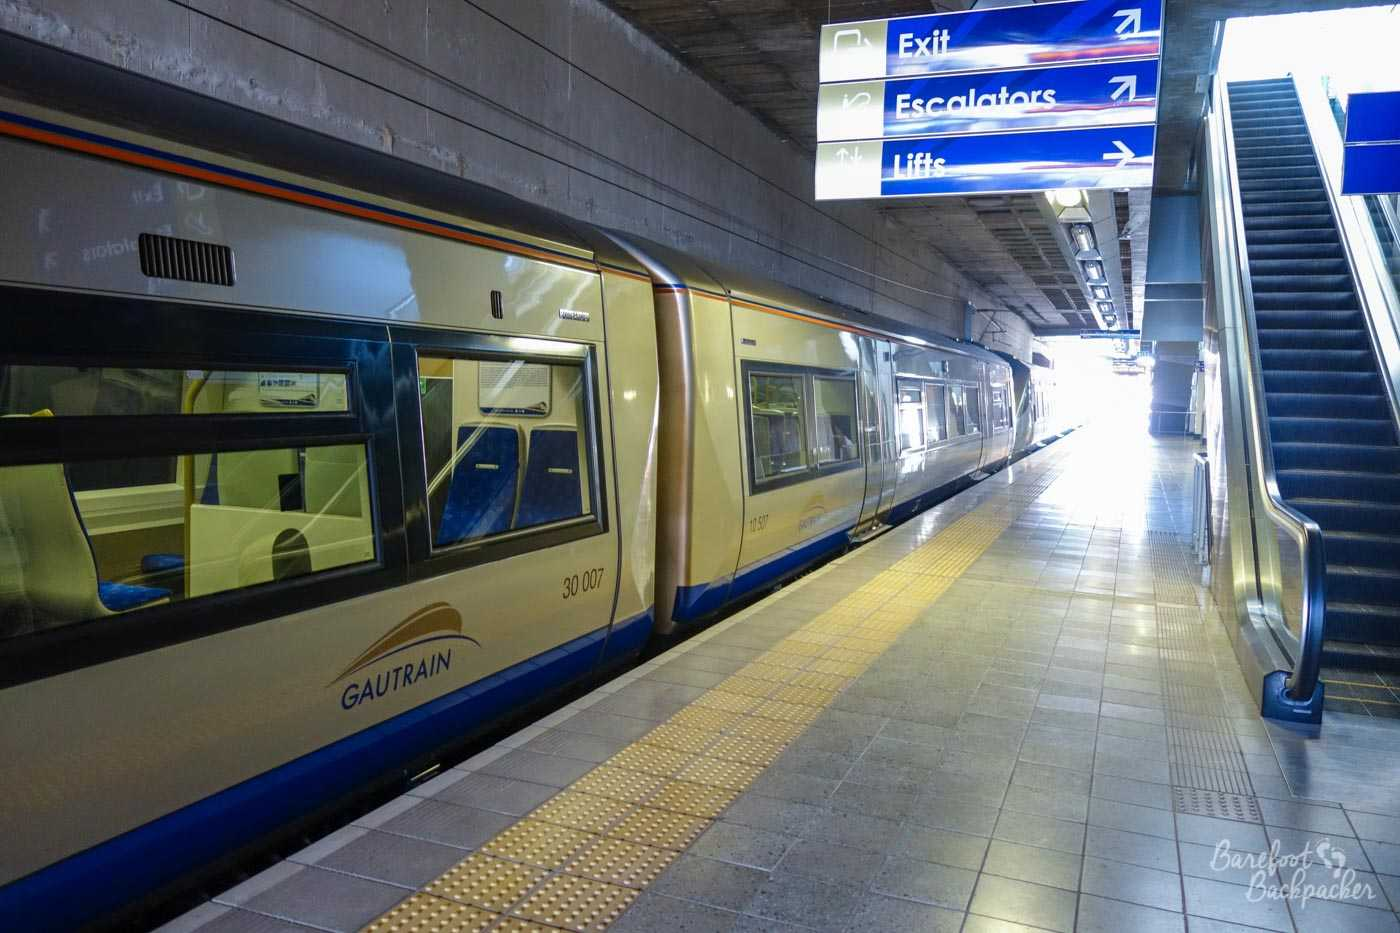 The Gautrain, presumably at Hatfield station.